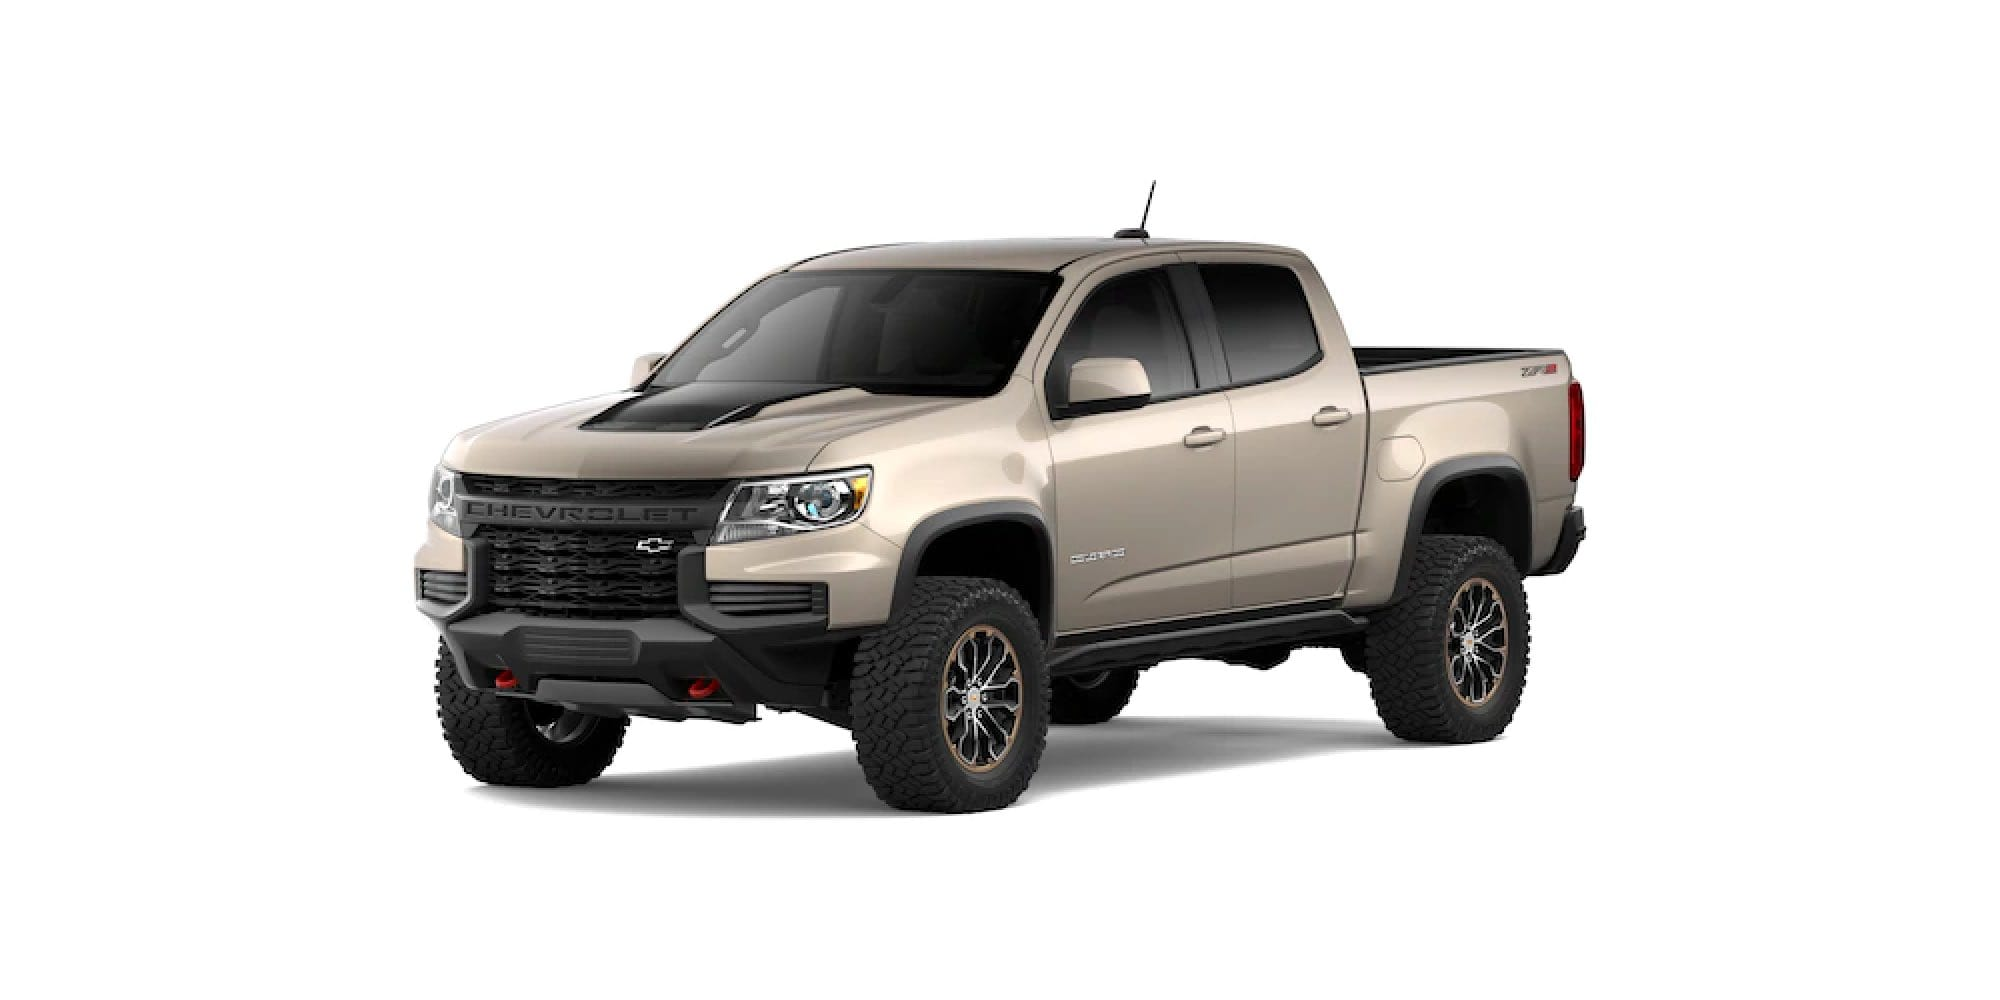 2021 Chevy Colorado in Sand Dune Metallic